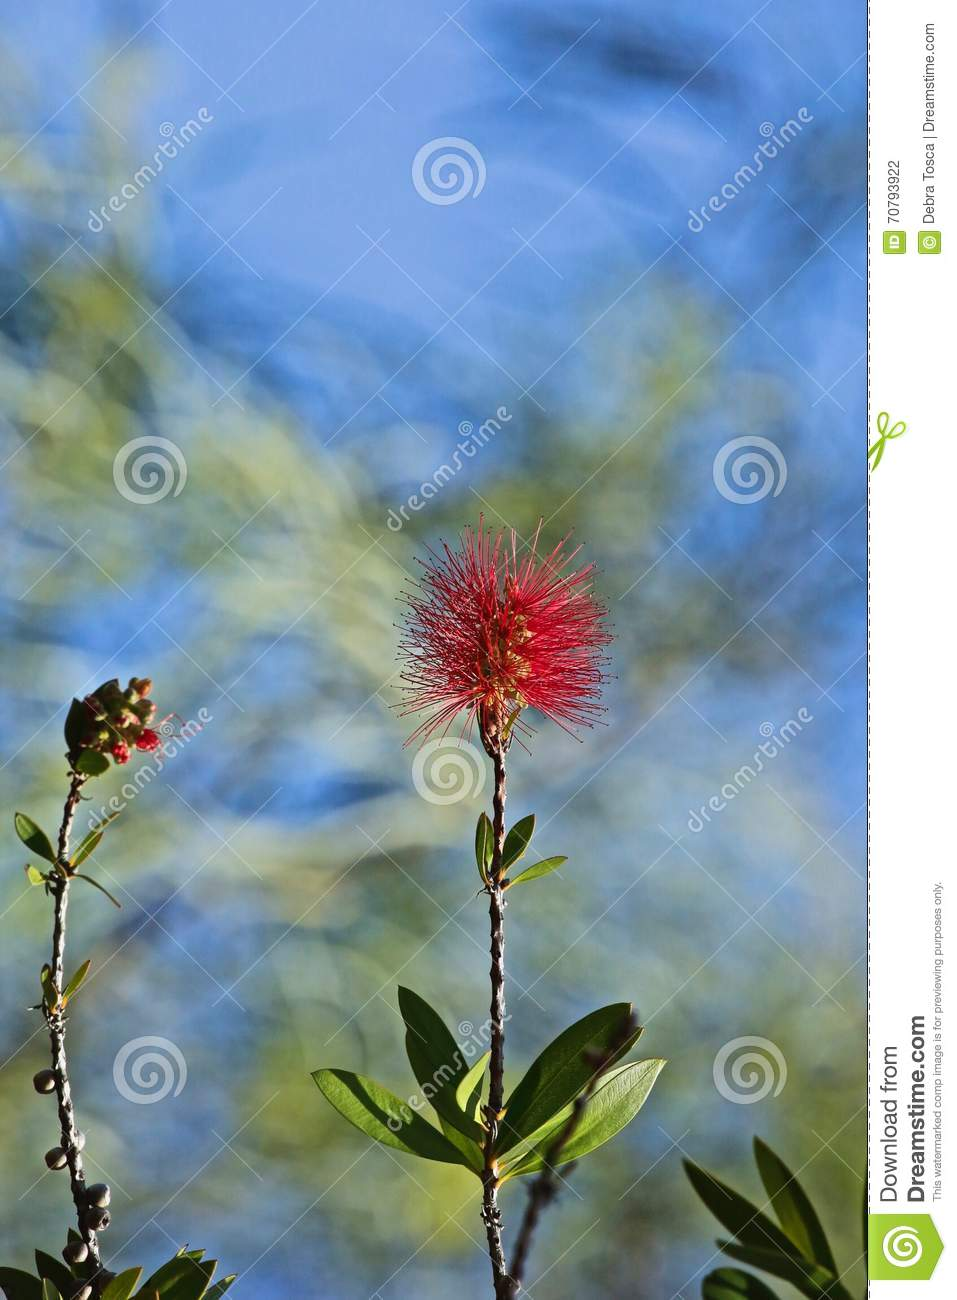 Red flowering tree ohi a metrosideros macropus stock photo image red fuzzy flowers shoot from branches of the hawaiian island native flowering eucalyptus tree izmirmasajfo